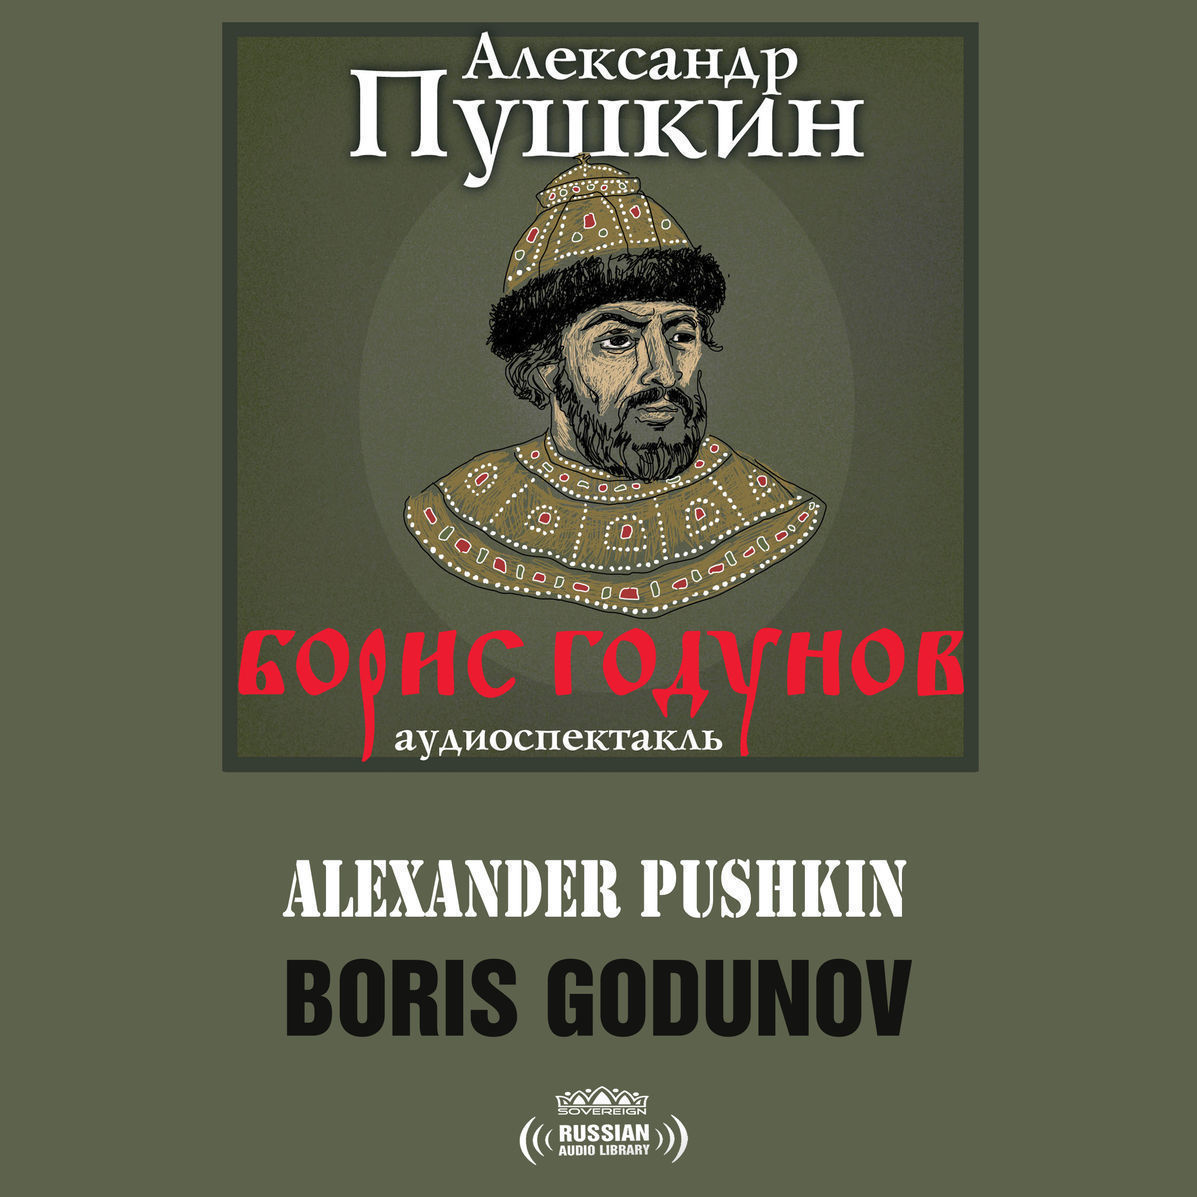 Printable Борис Годунов [Russian Edition] Audiobook Cover Art